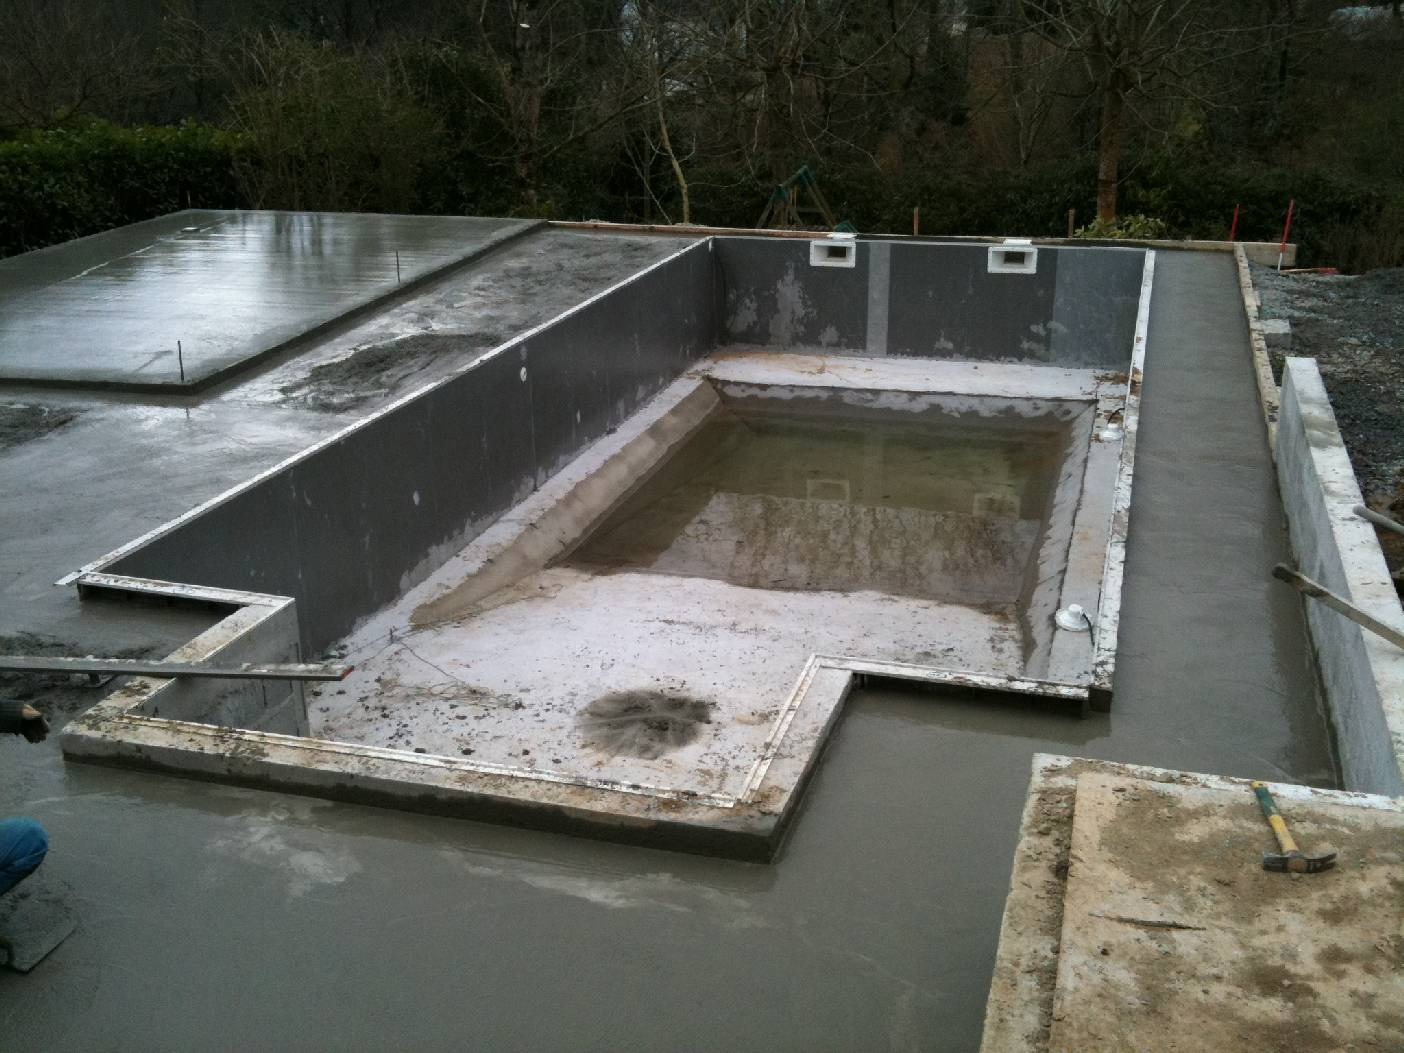 Am nagement des abords d 39 une piscine quimper goalabre for Piscine quimper